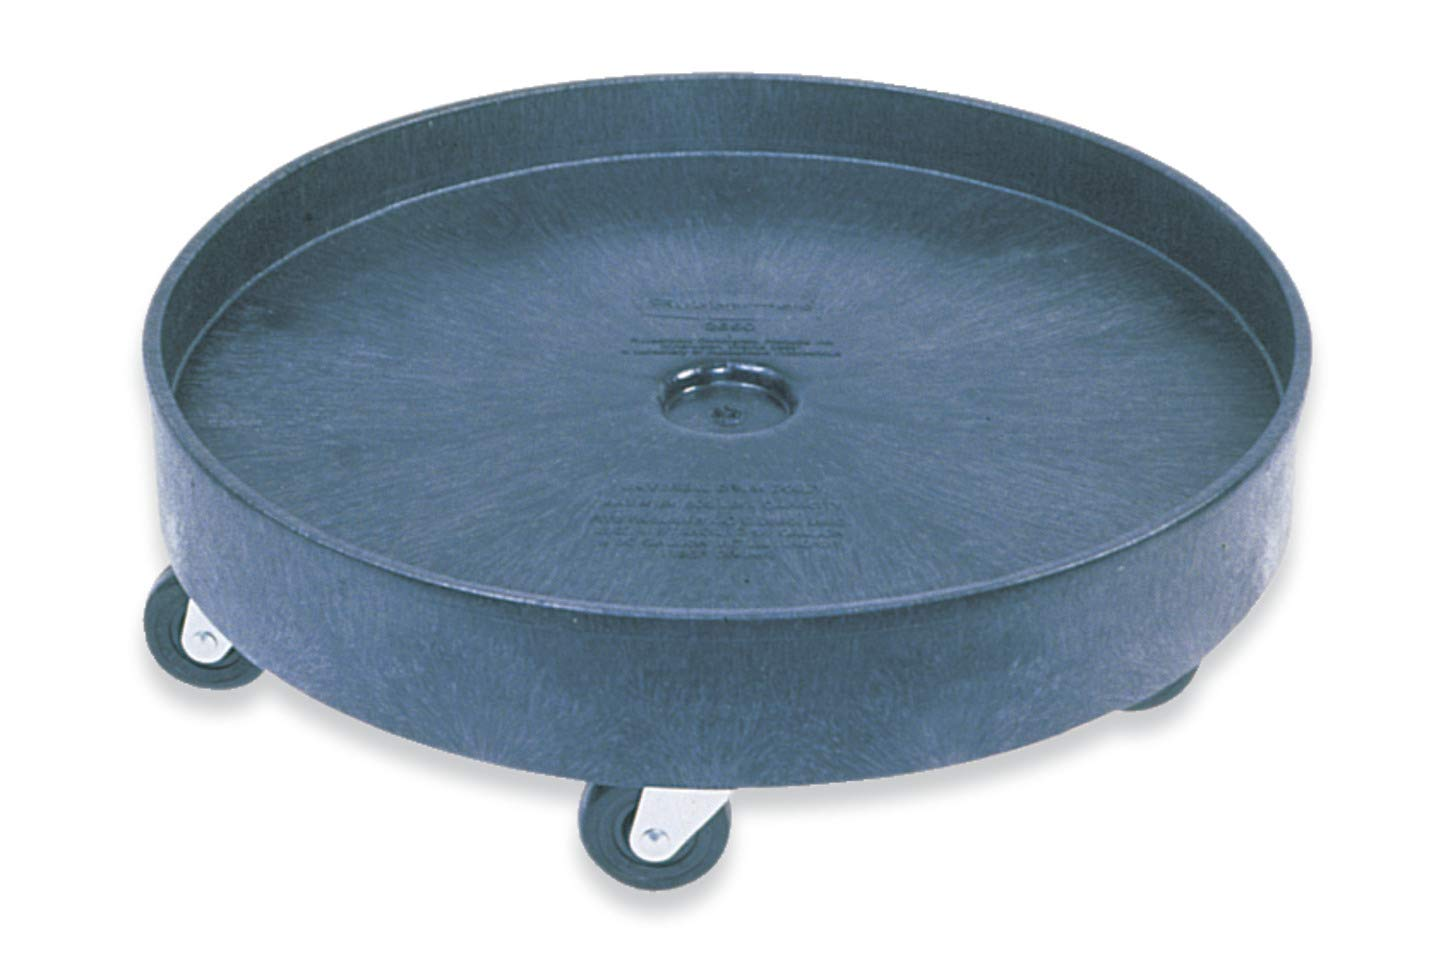 Rubbermaid Commercial Universal Drum Dolly for 55G Round Container FG265000BLA Black,